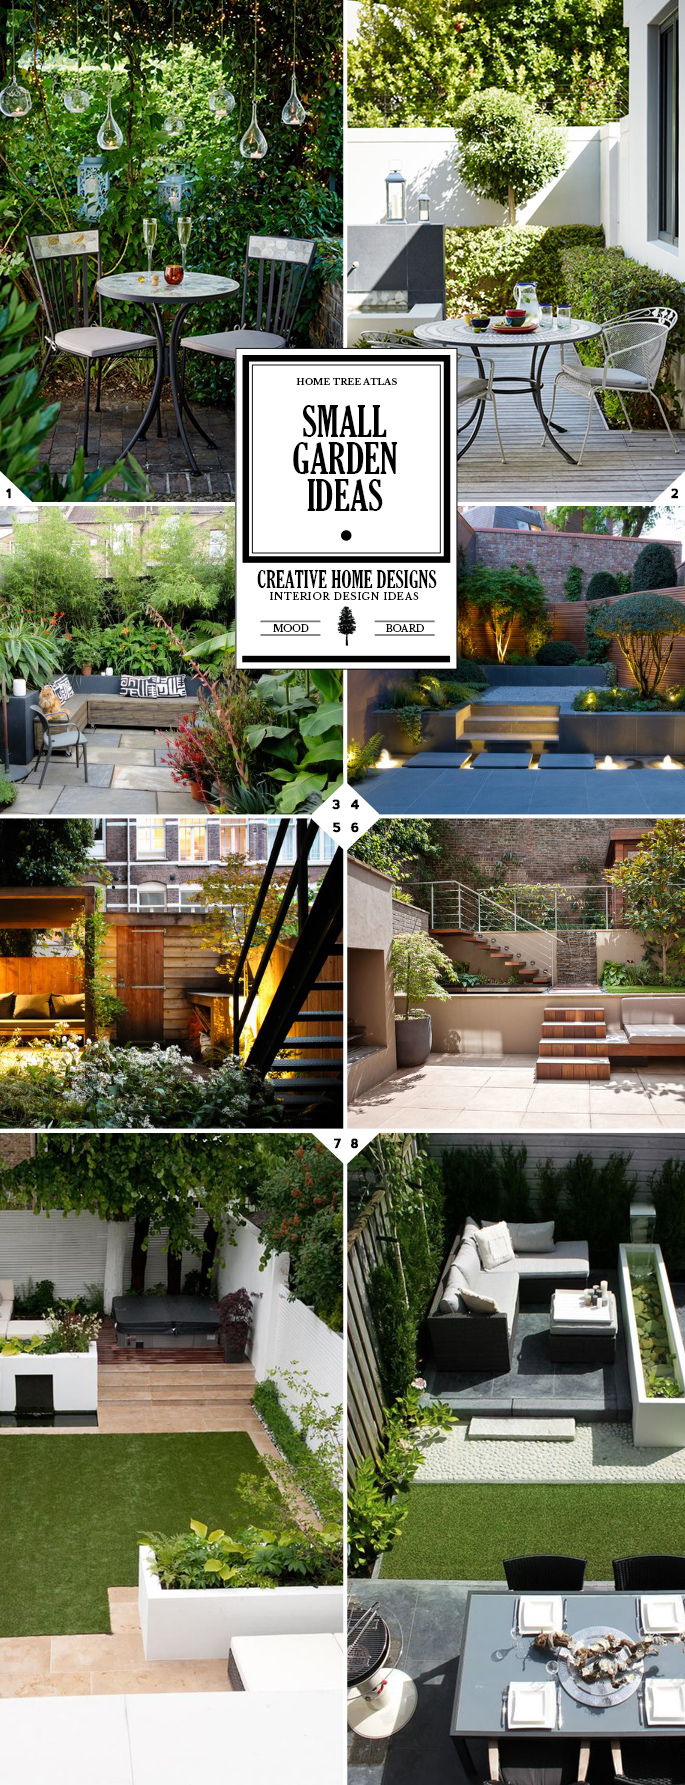 Small Garden Ideas and Designs: Making The Most of Your Space